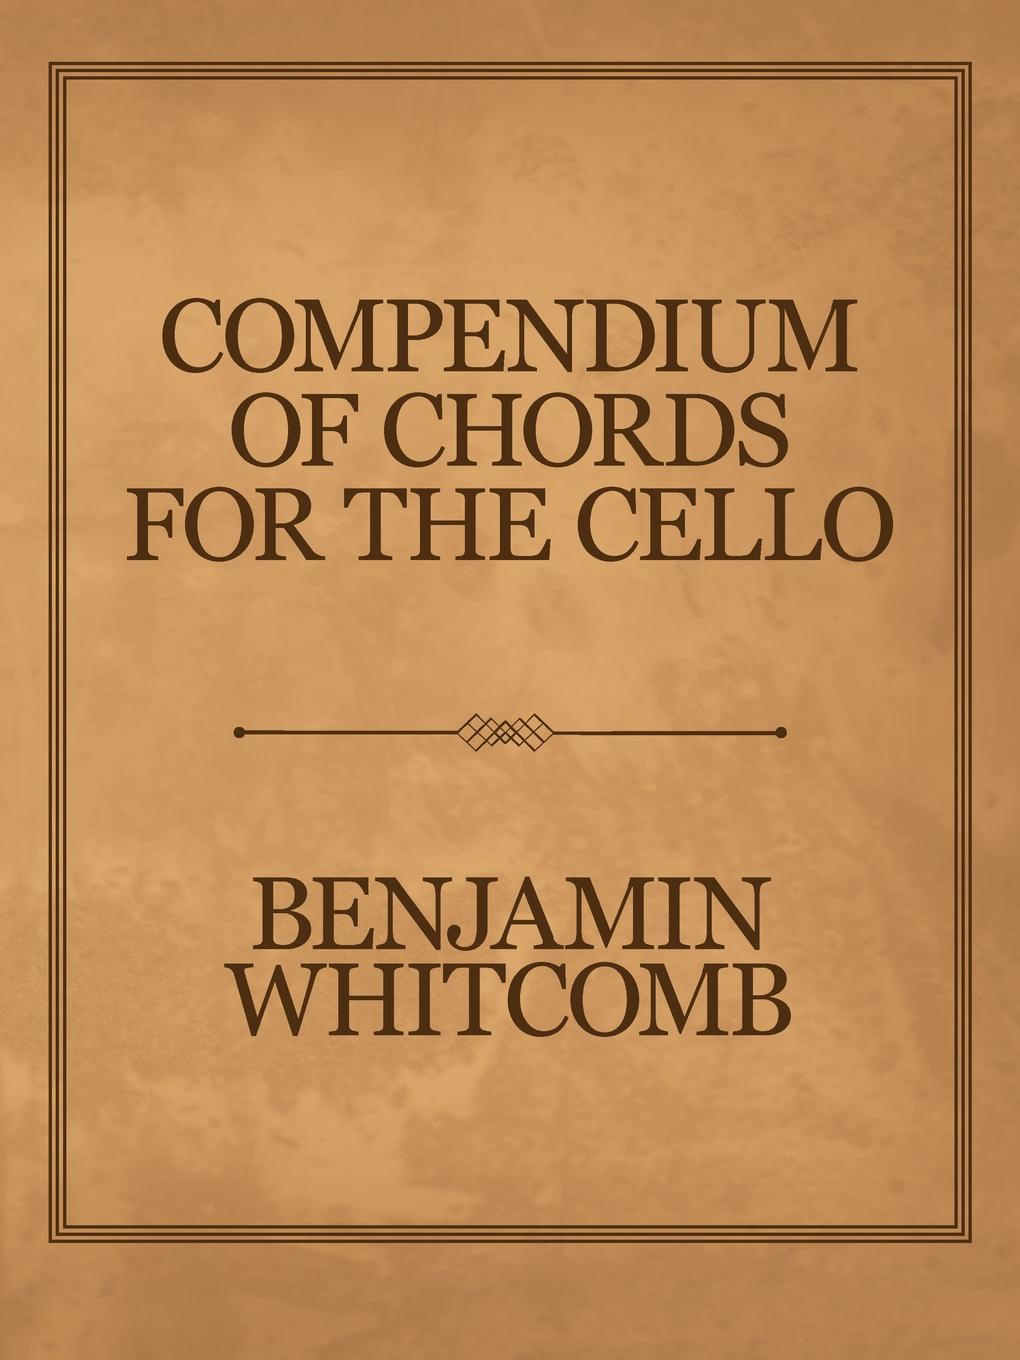 Benjamin Whitcomb Compendium of Chords for the Cello stella vienna standish are there chords in the harps of humanity